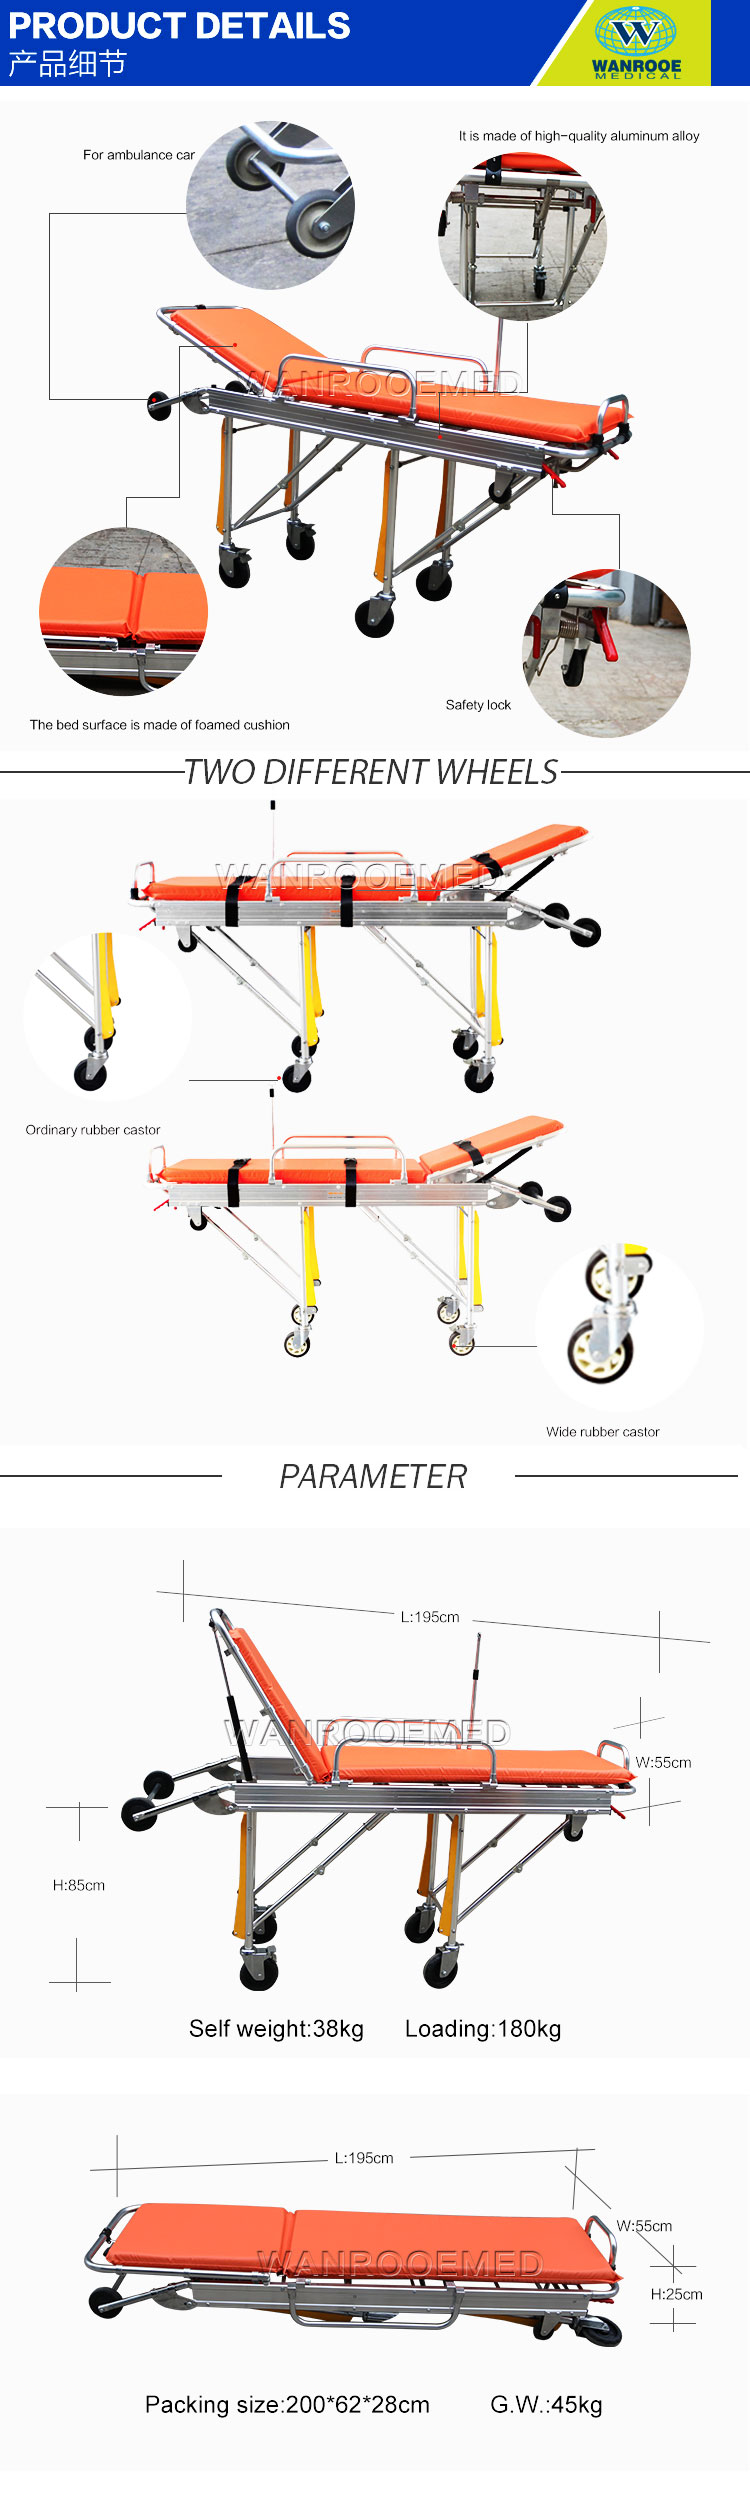 Emergency Ambulance Cot, Medical Ambulance Stretcher, Foldable Transport Stretcher, Stainless Steel Ambulance Trolley, Transport Patient Stretcher, Multi-position Ambulance Cot